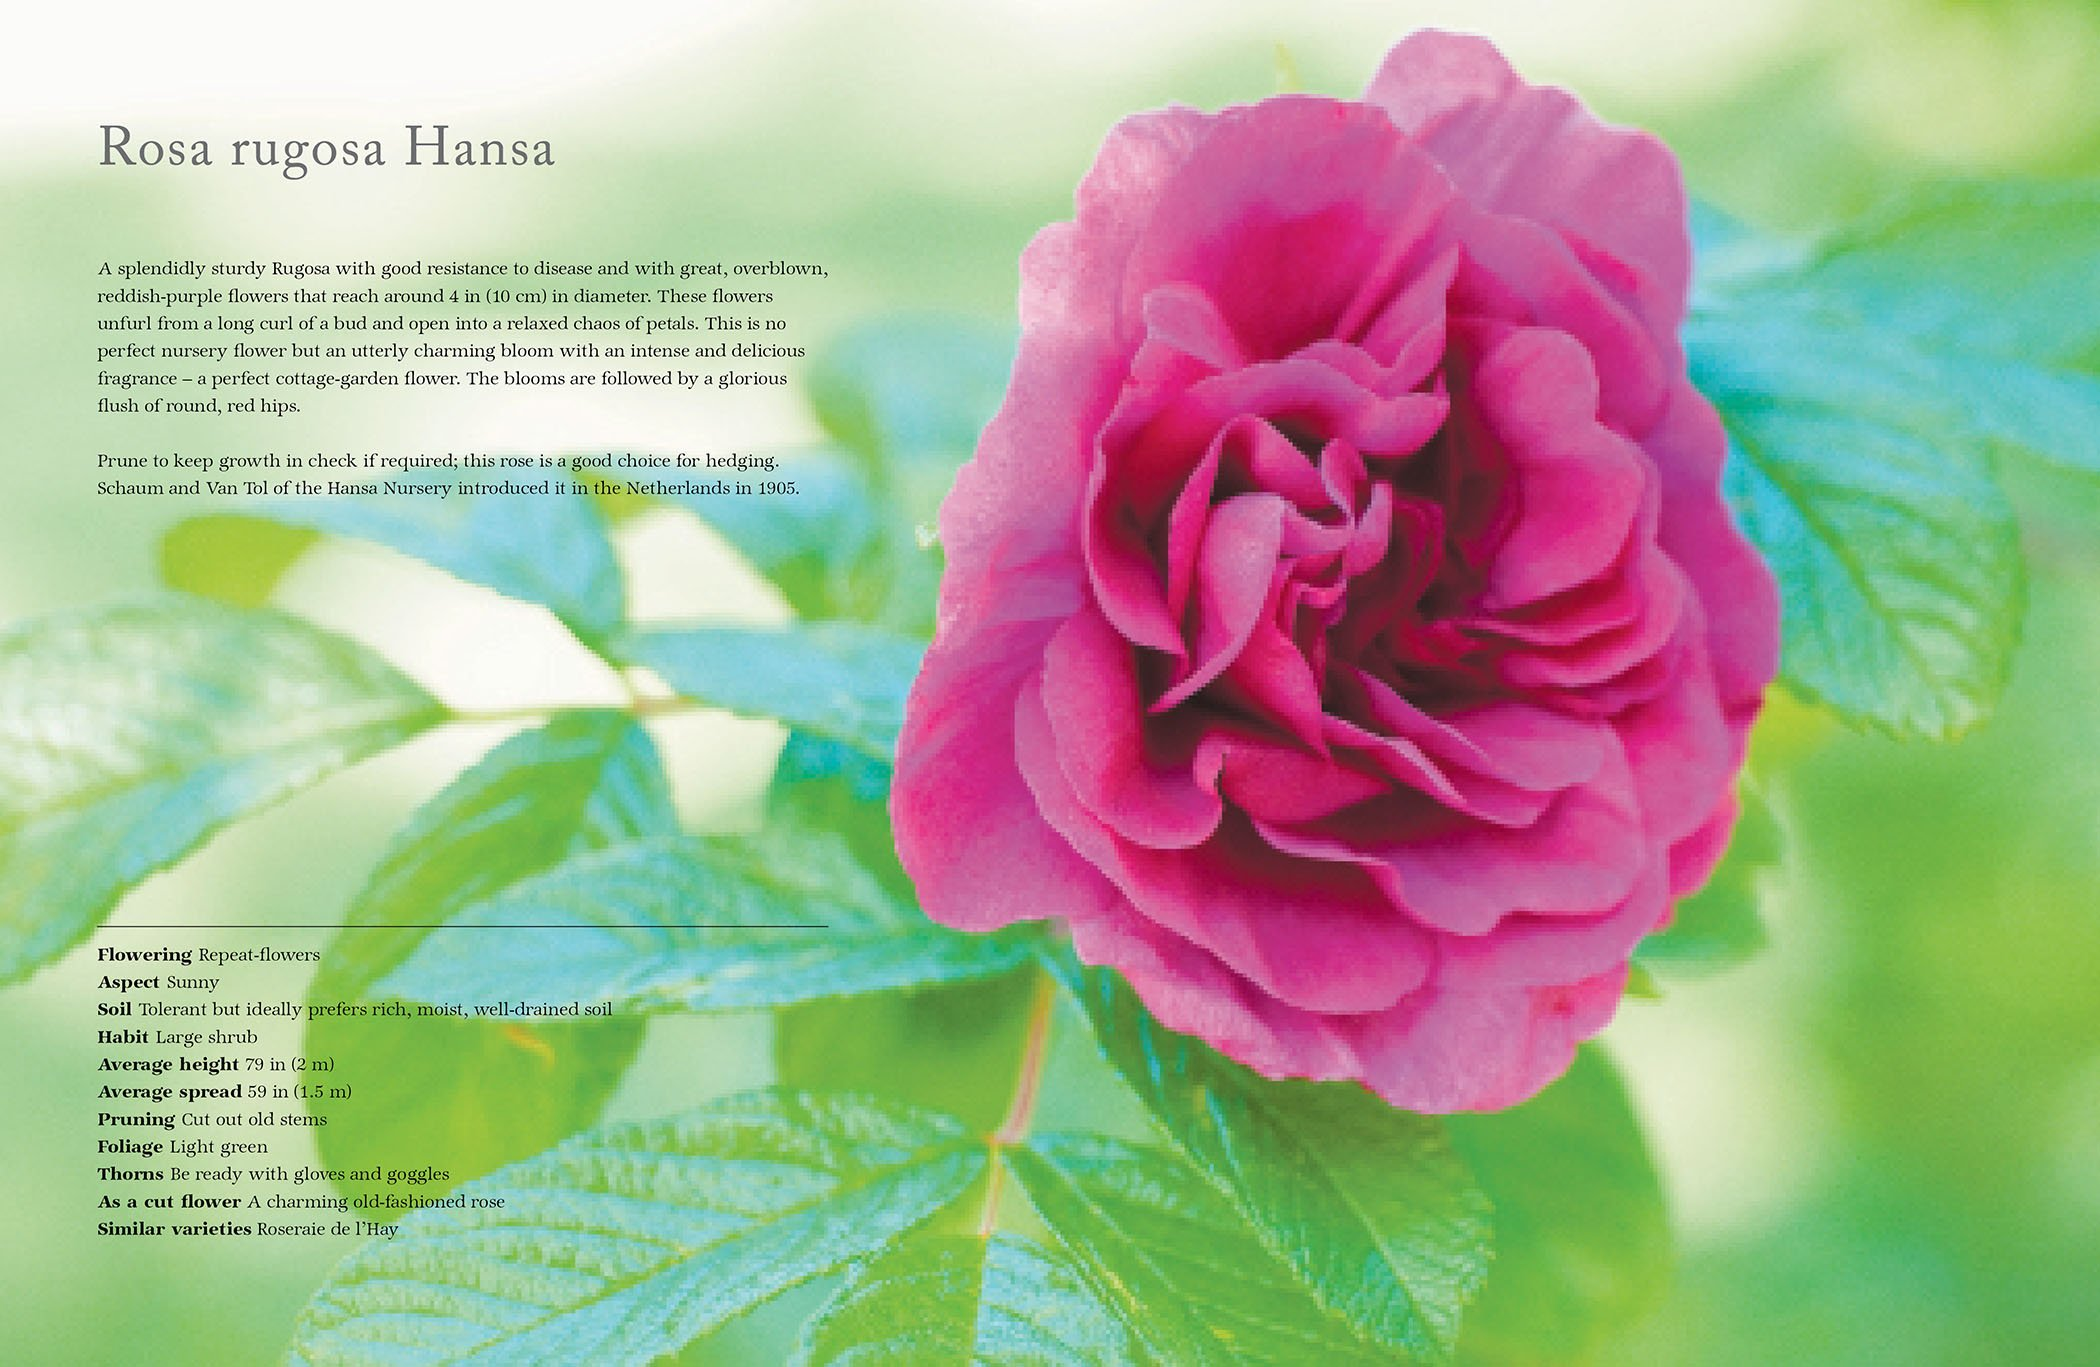 Vintage roses beautiful varieties for home and garden jane eastoe vintage roses beautiful varieties for home and garden jane eastoe georgianna lane 9781423646716 amazon books izmirmasajfo